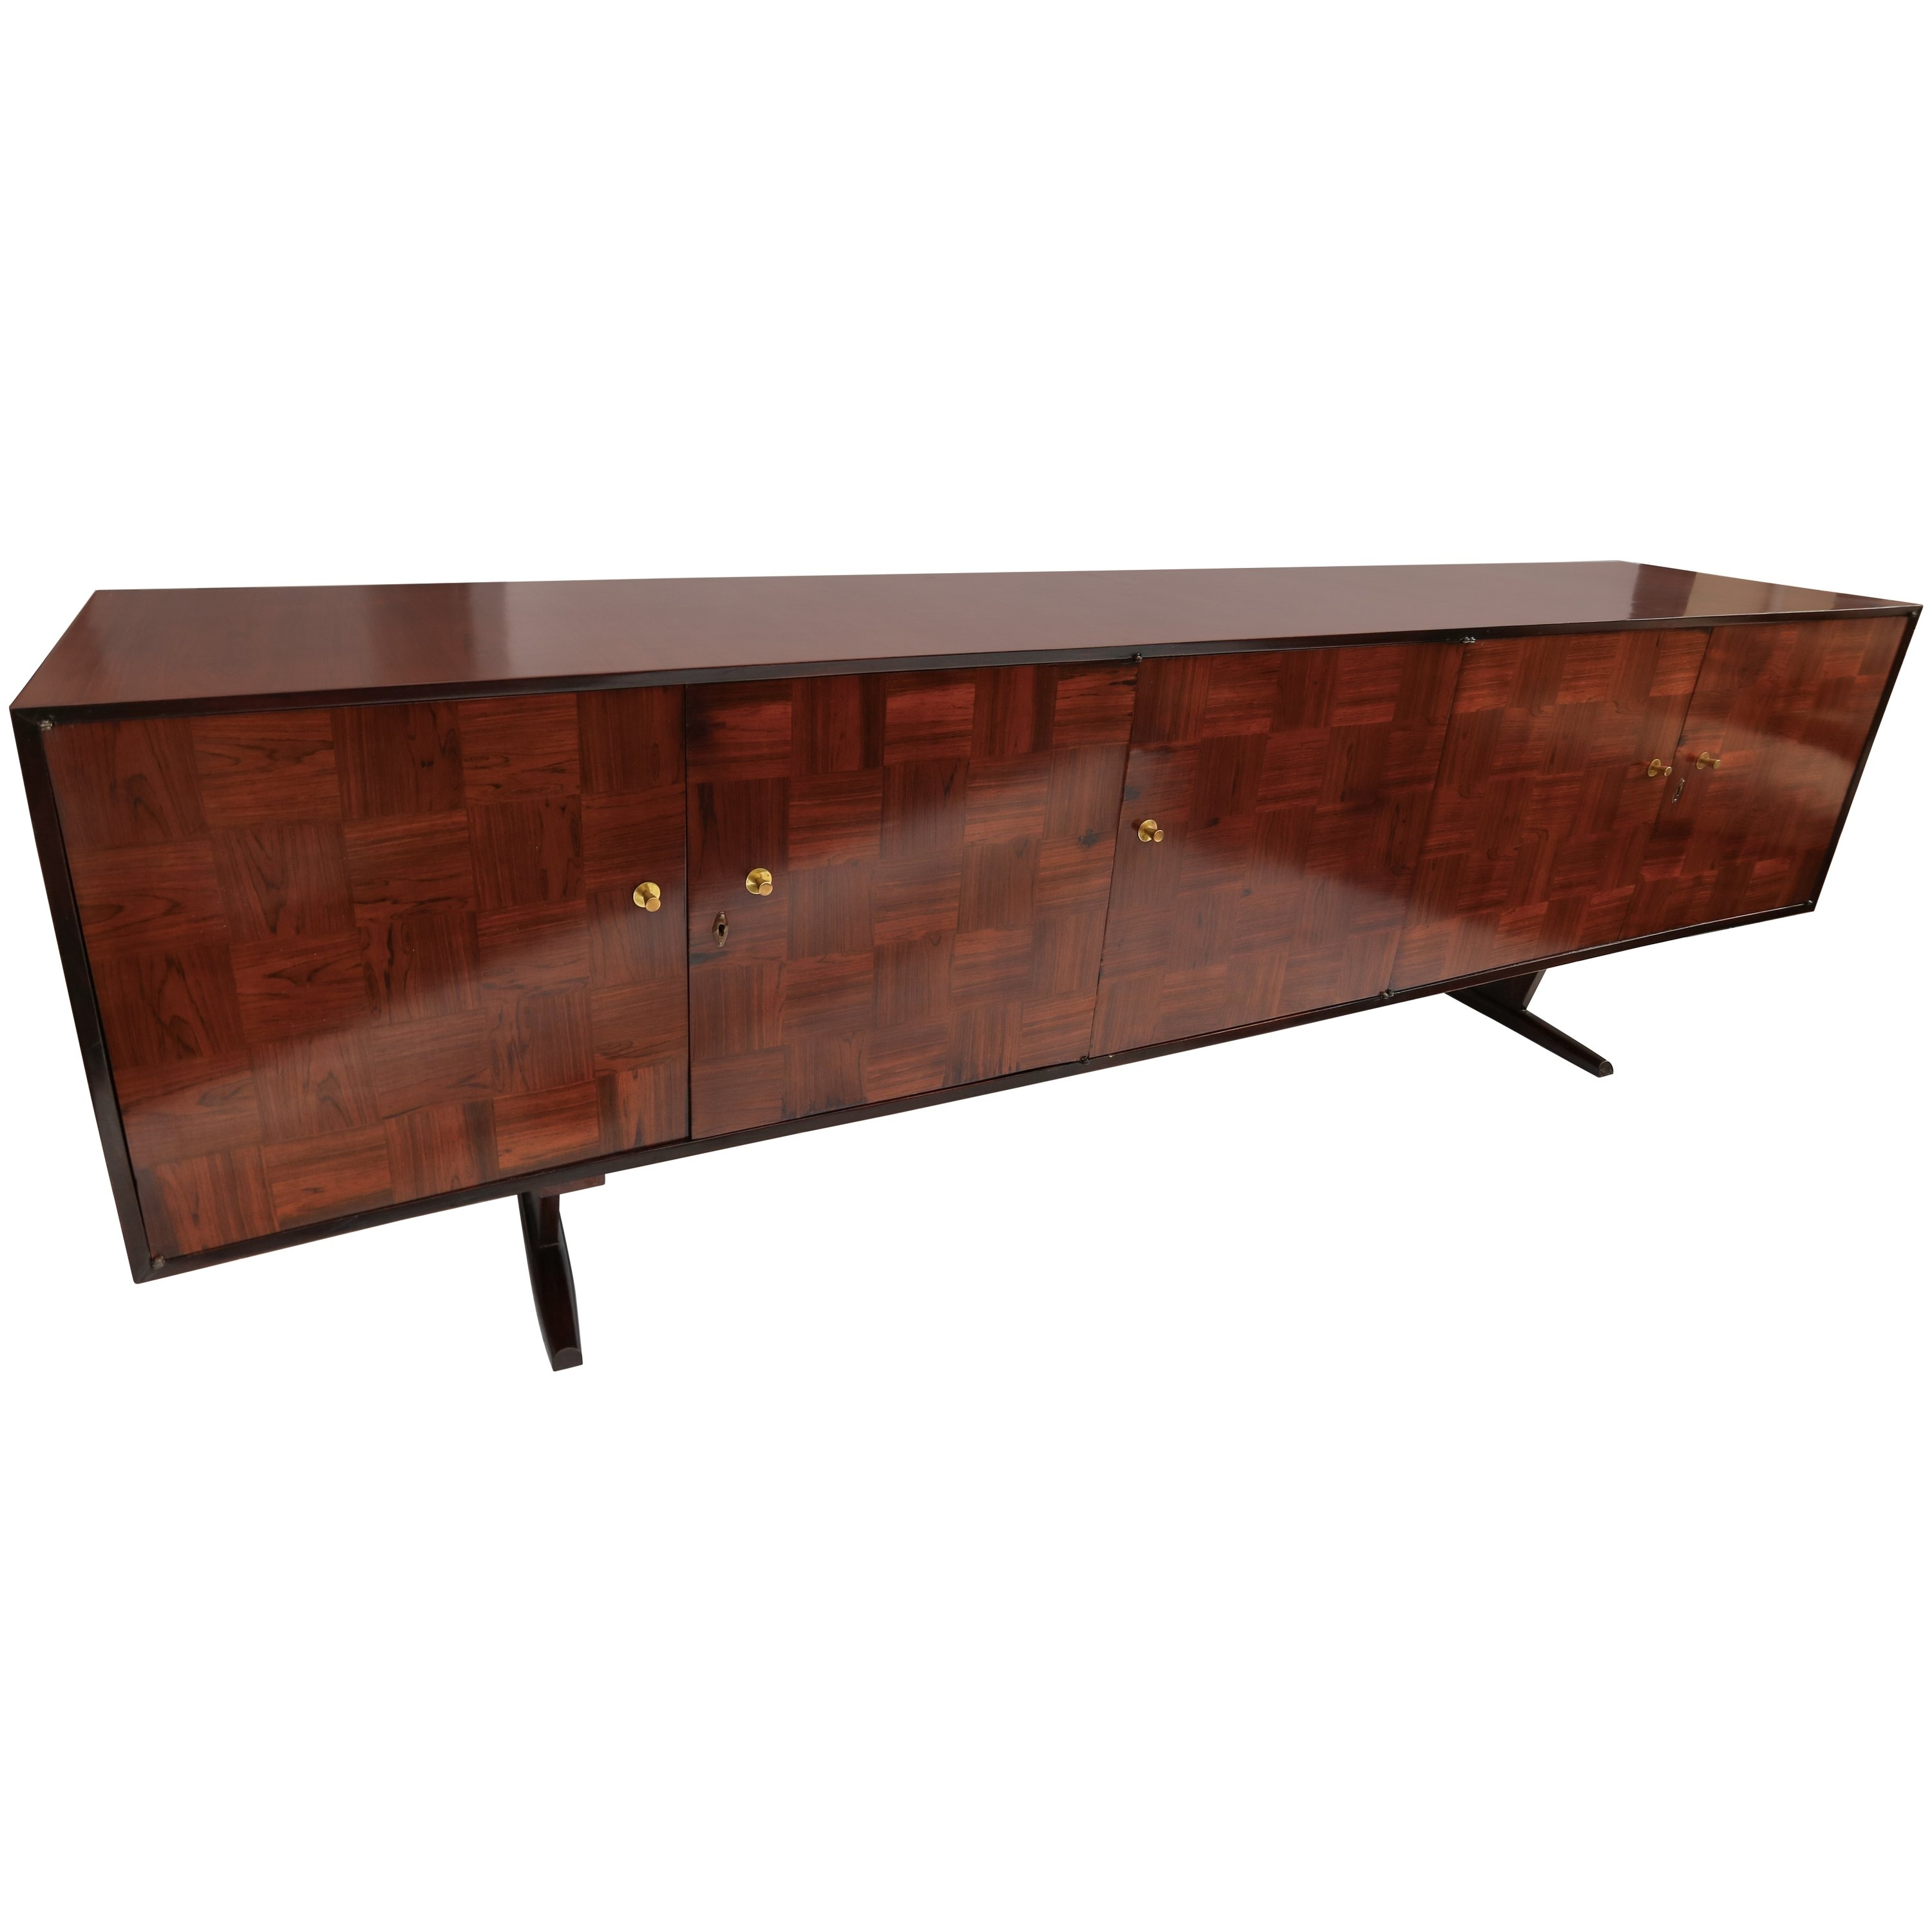 Scapinelli 1960S Brazilian Jacaranda Parquet Sideboard For Sale At with regard to Parquet Sideboards (Image 22 of 30)